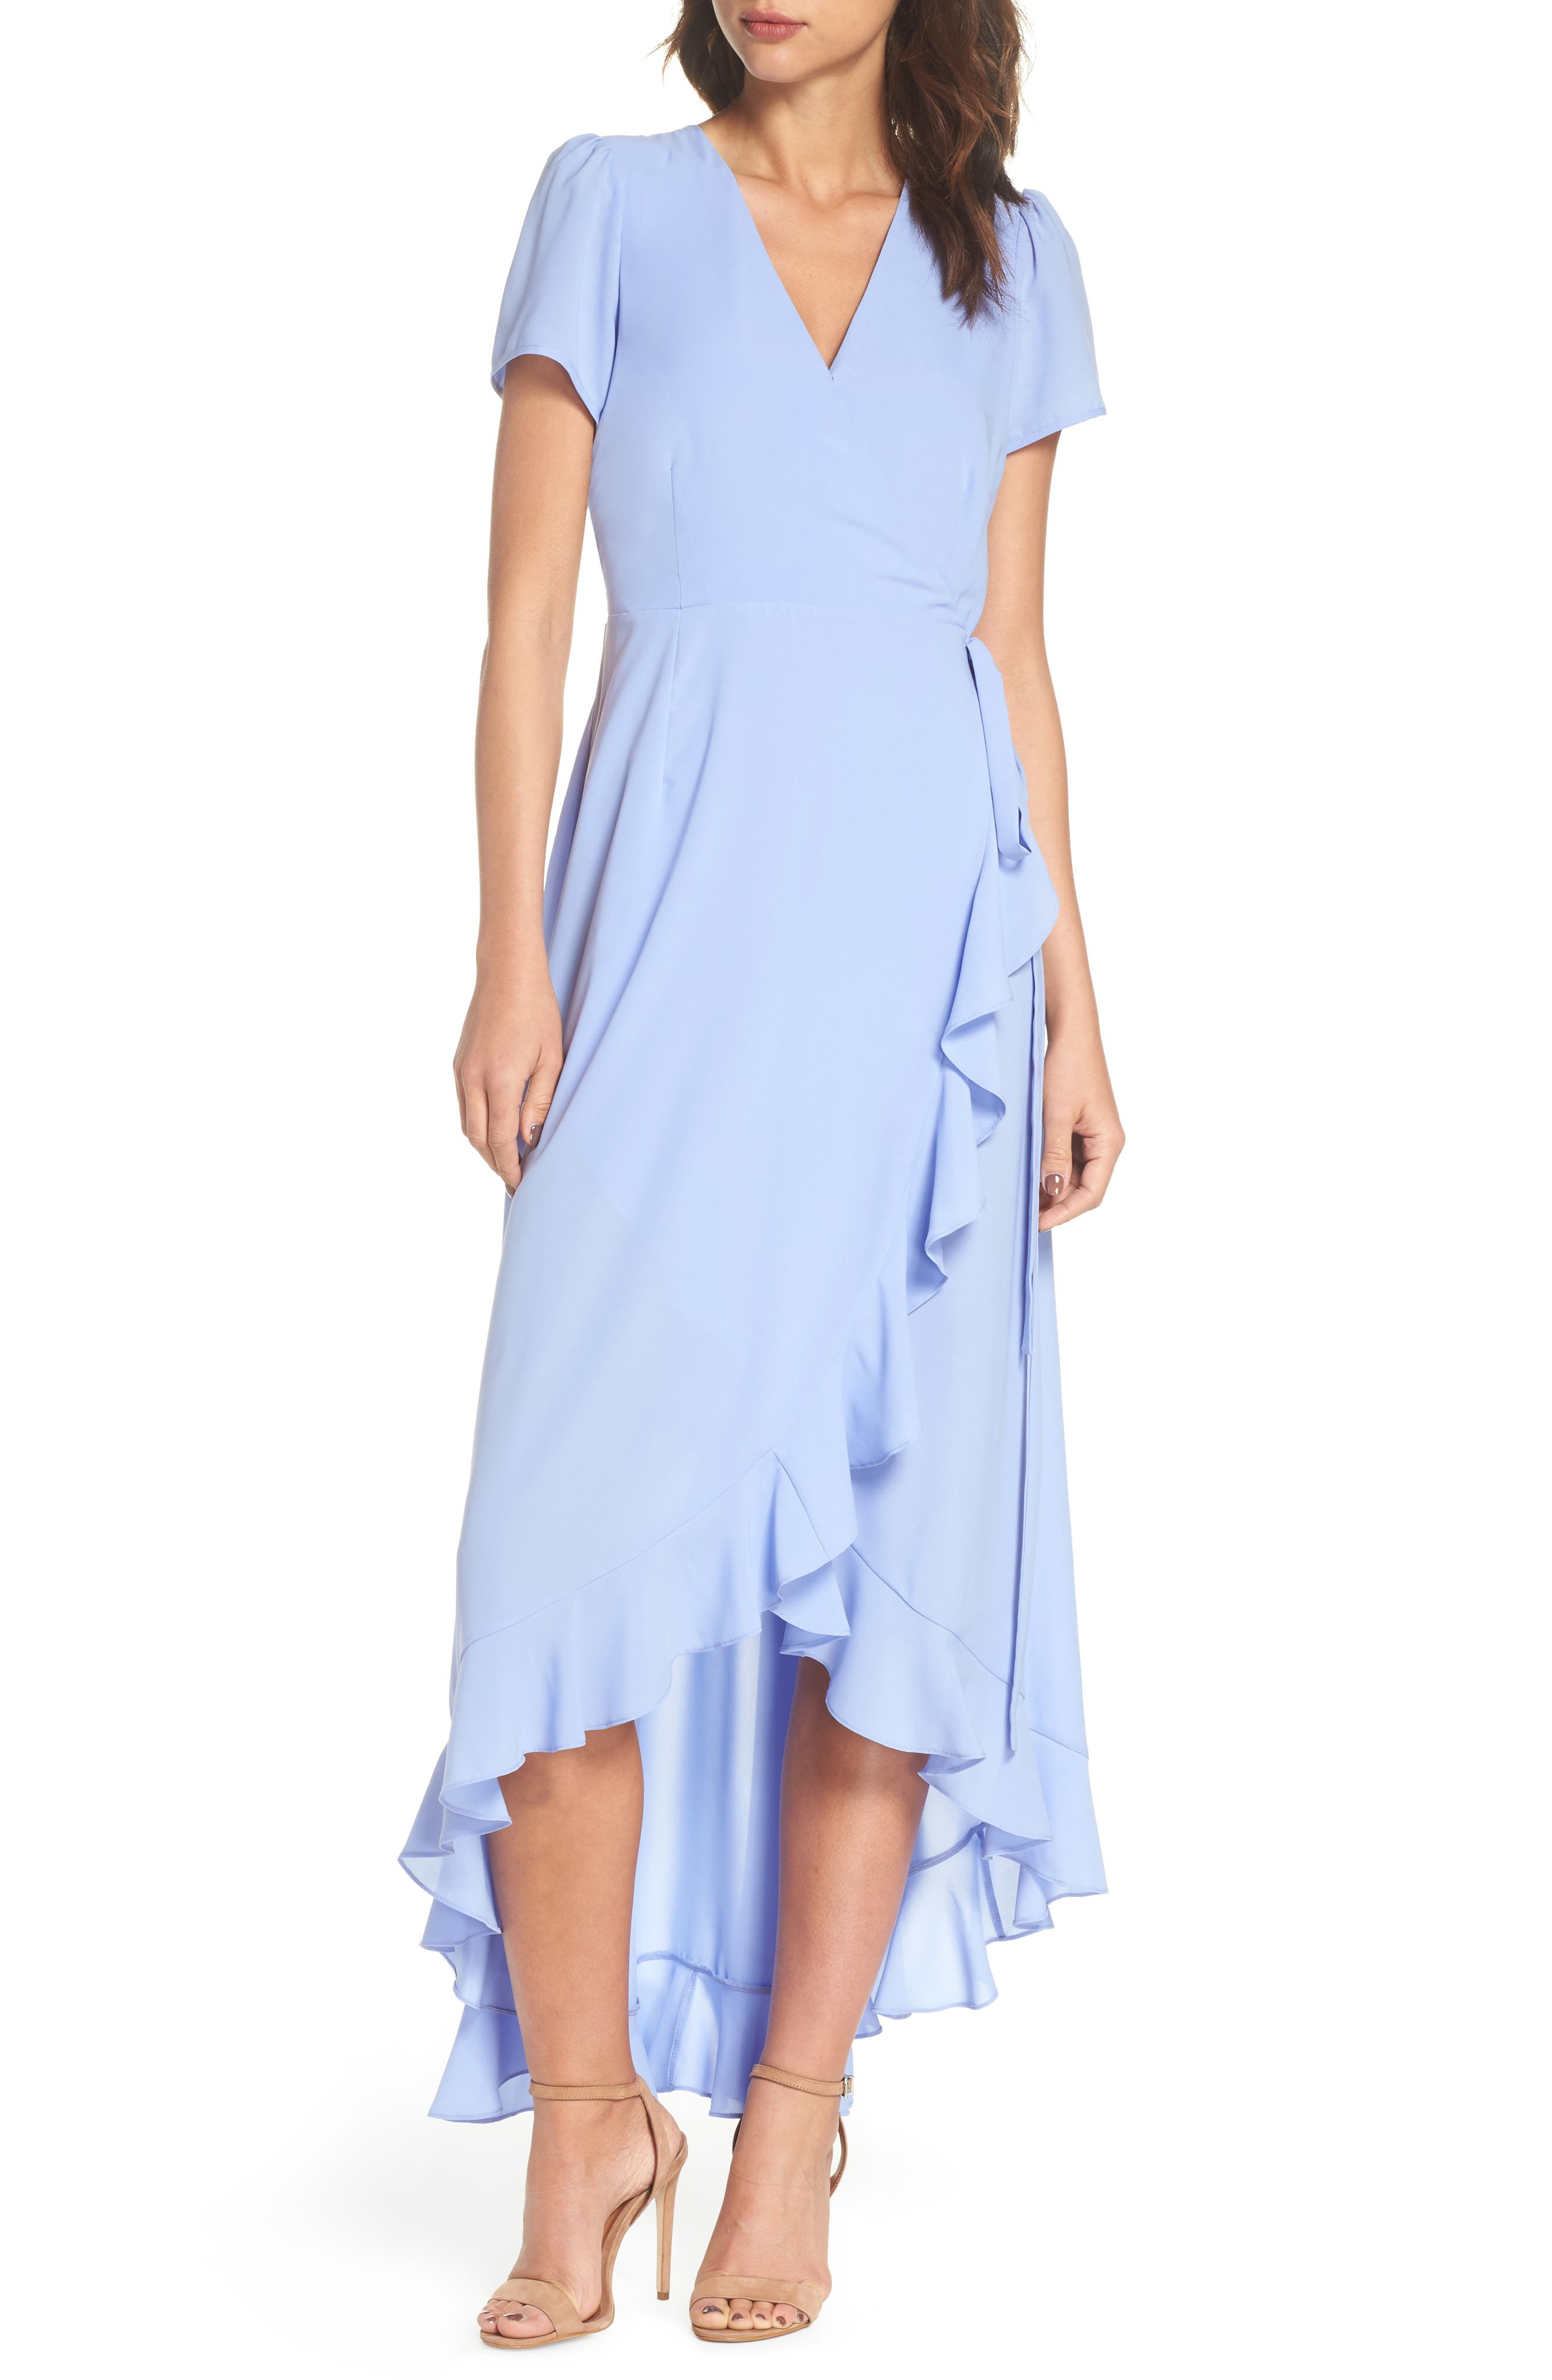 Main Image - Felicity & Coco Madge Ruffle Wrap Maxi Dress (Regular & Petite) (Nordstrom Exclusive)